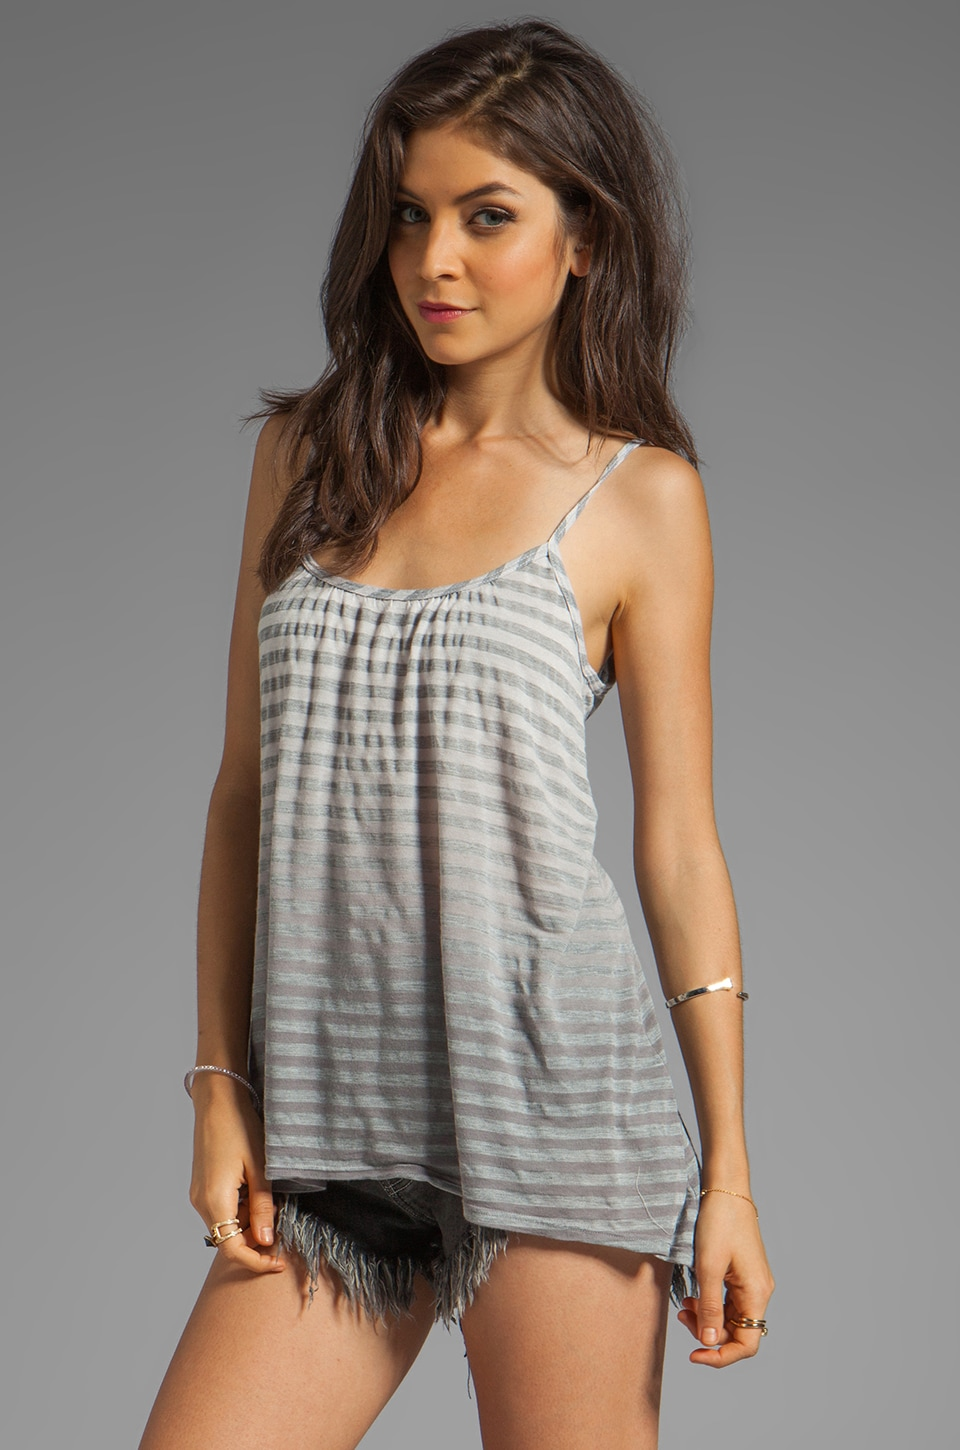 Gypsy 05 Cabarete Jersey Stripe Simple Cami in Graphite